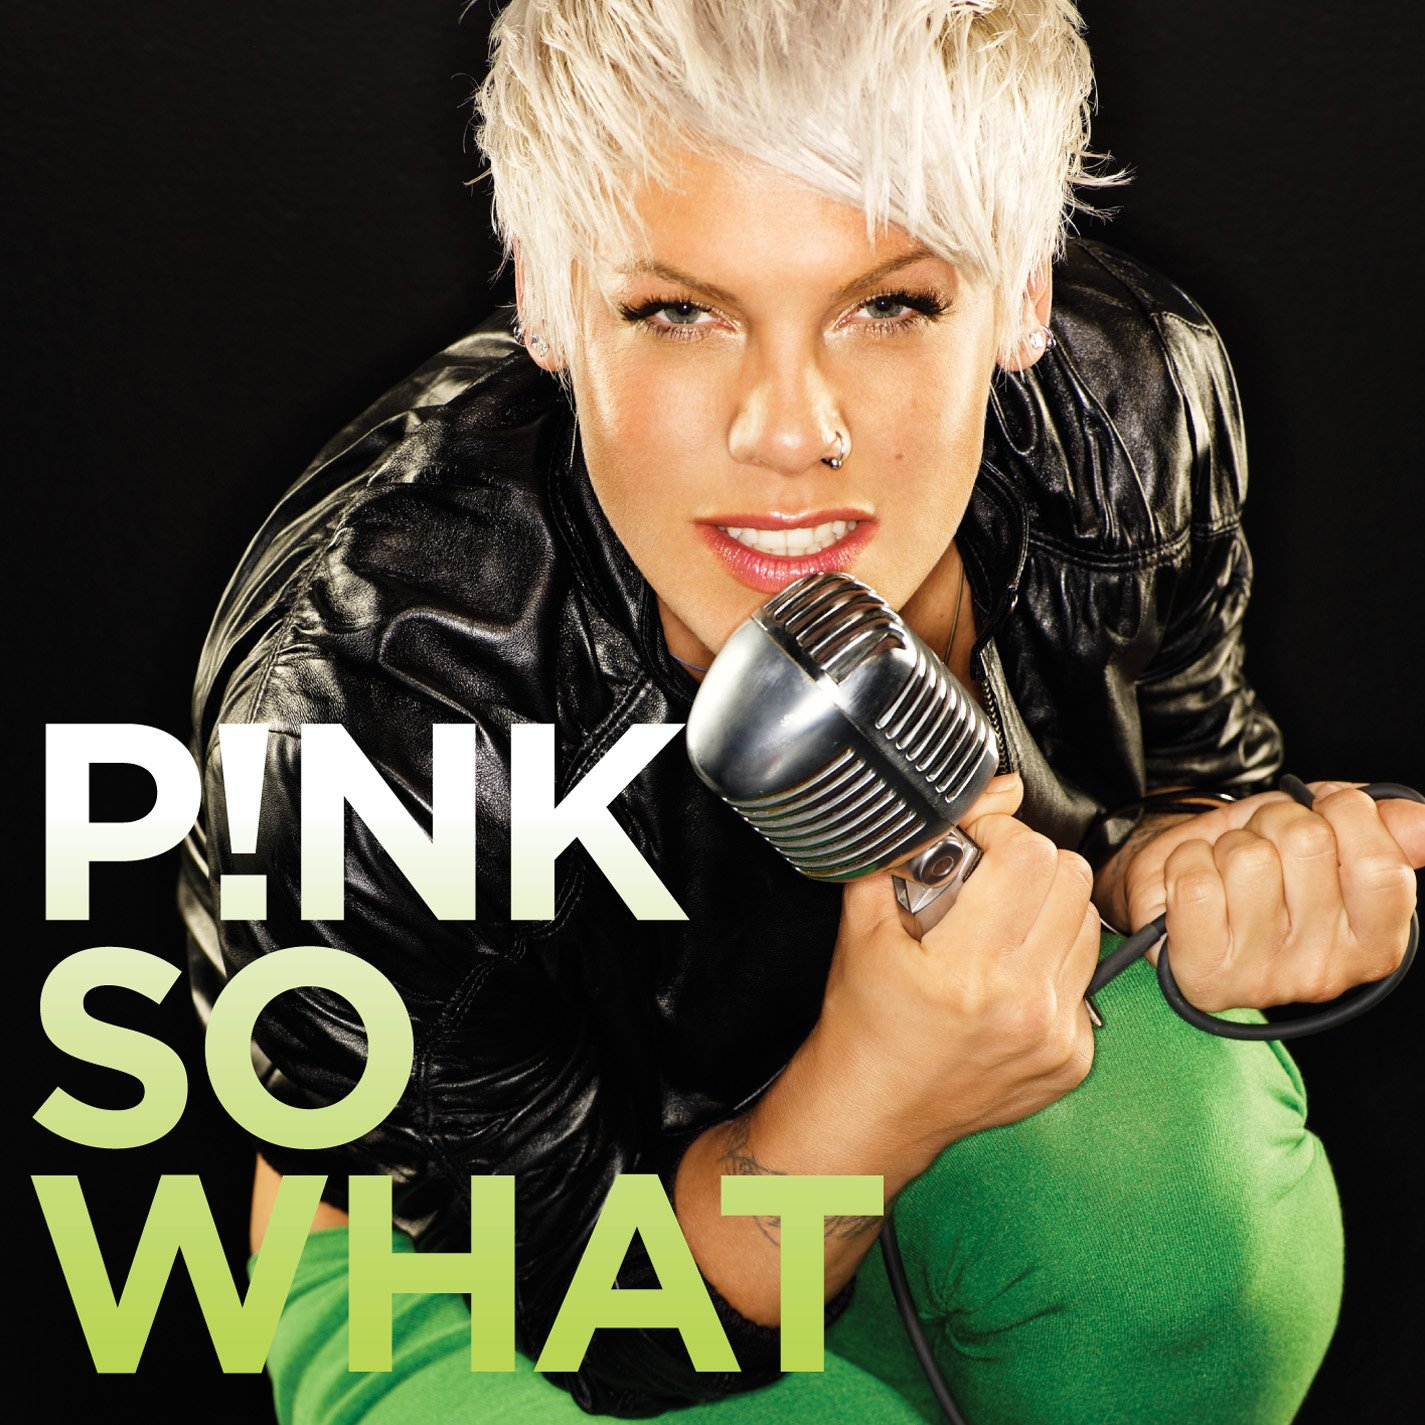 http://www.urban.ro/wp-content/uploads/2008/08/pink-so-what.jpg